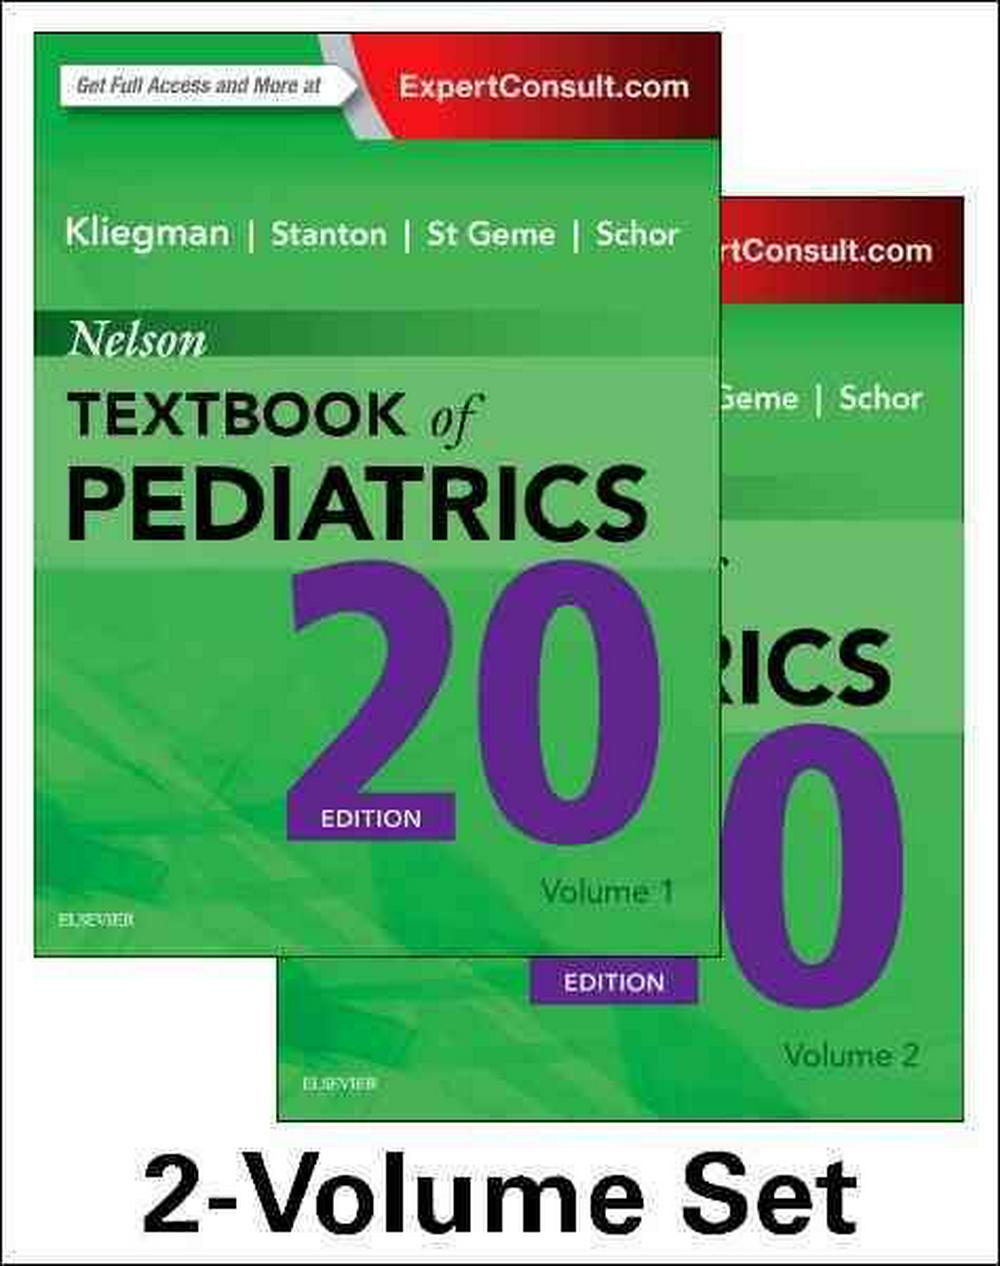 Nelson Textbook of Pediatrics, 20e